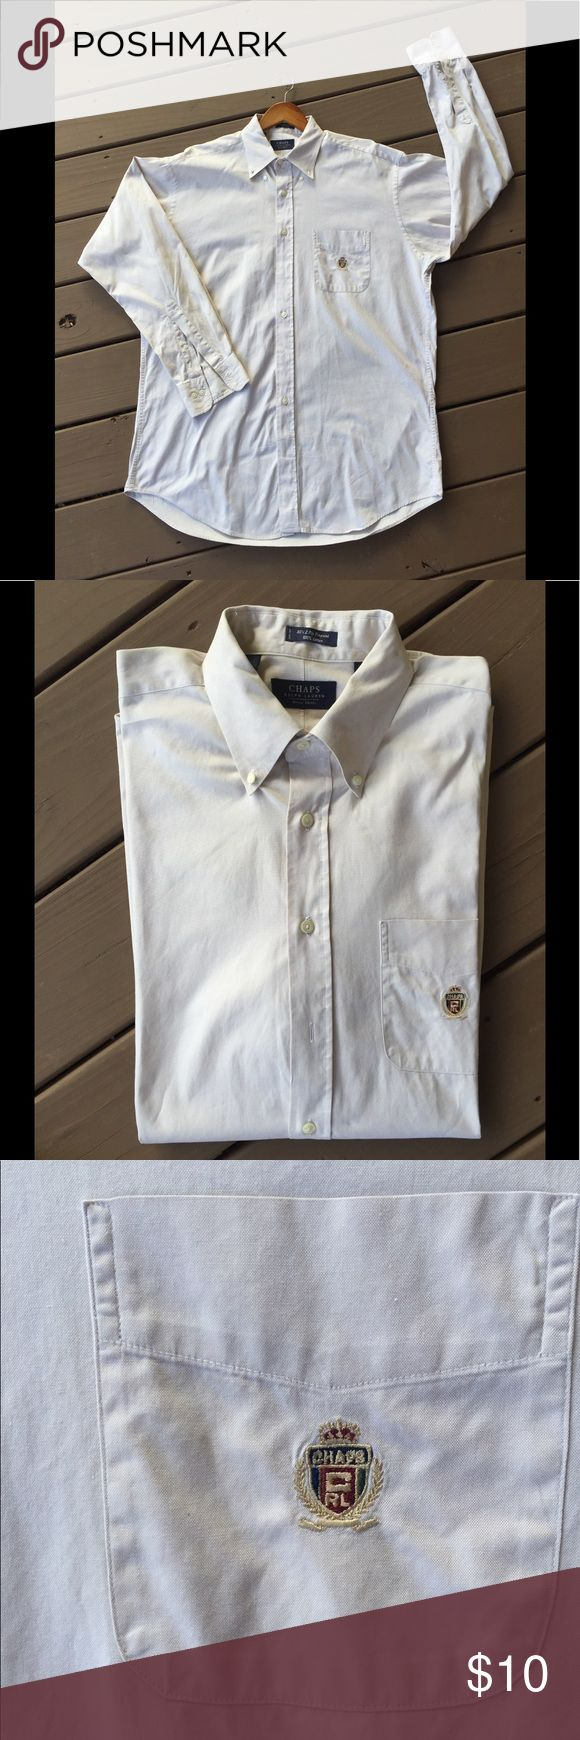 Chaps Ralph Lauren Dress Shirt Size 16 1/2 Chaps Ralph Lauren Dress Shirt Size 16 1/2 100% Cotton. My husband recently cleaned out his closet and I am selling his previous wardrobe.  Comes from a pet free and smoking free home. Accepting bundle for additional discount. Chaps Shirts Dress Shirts